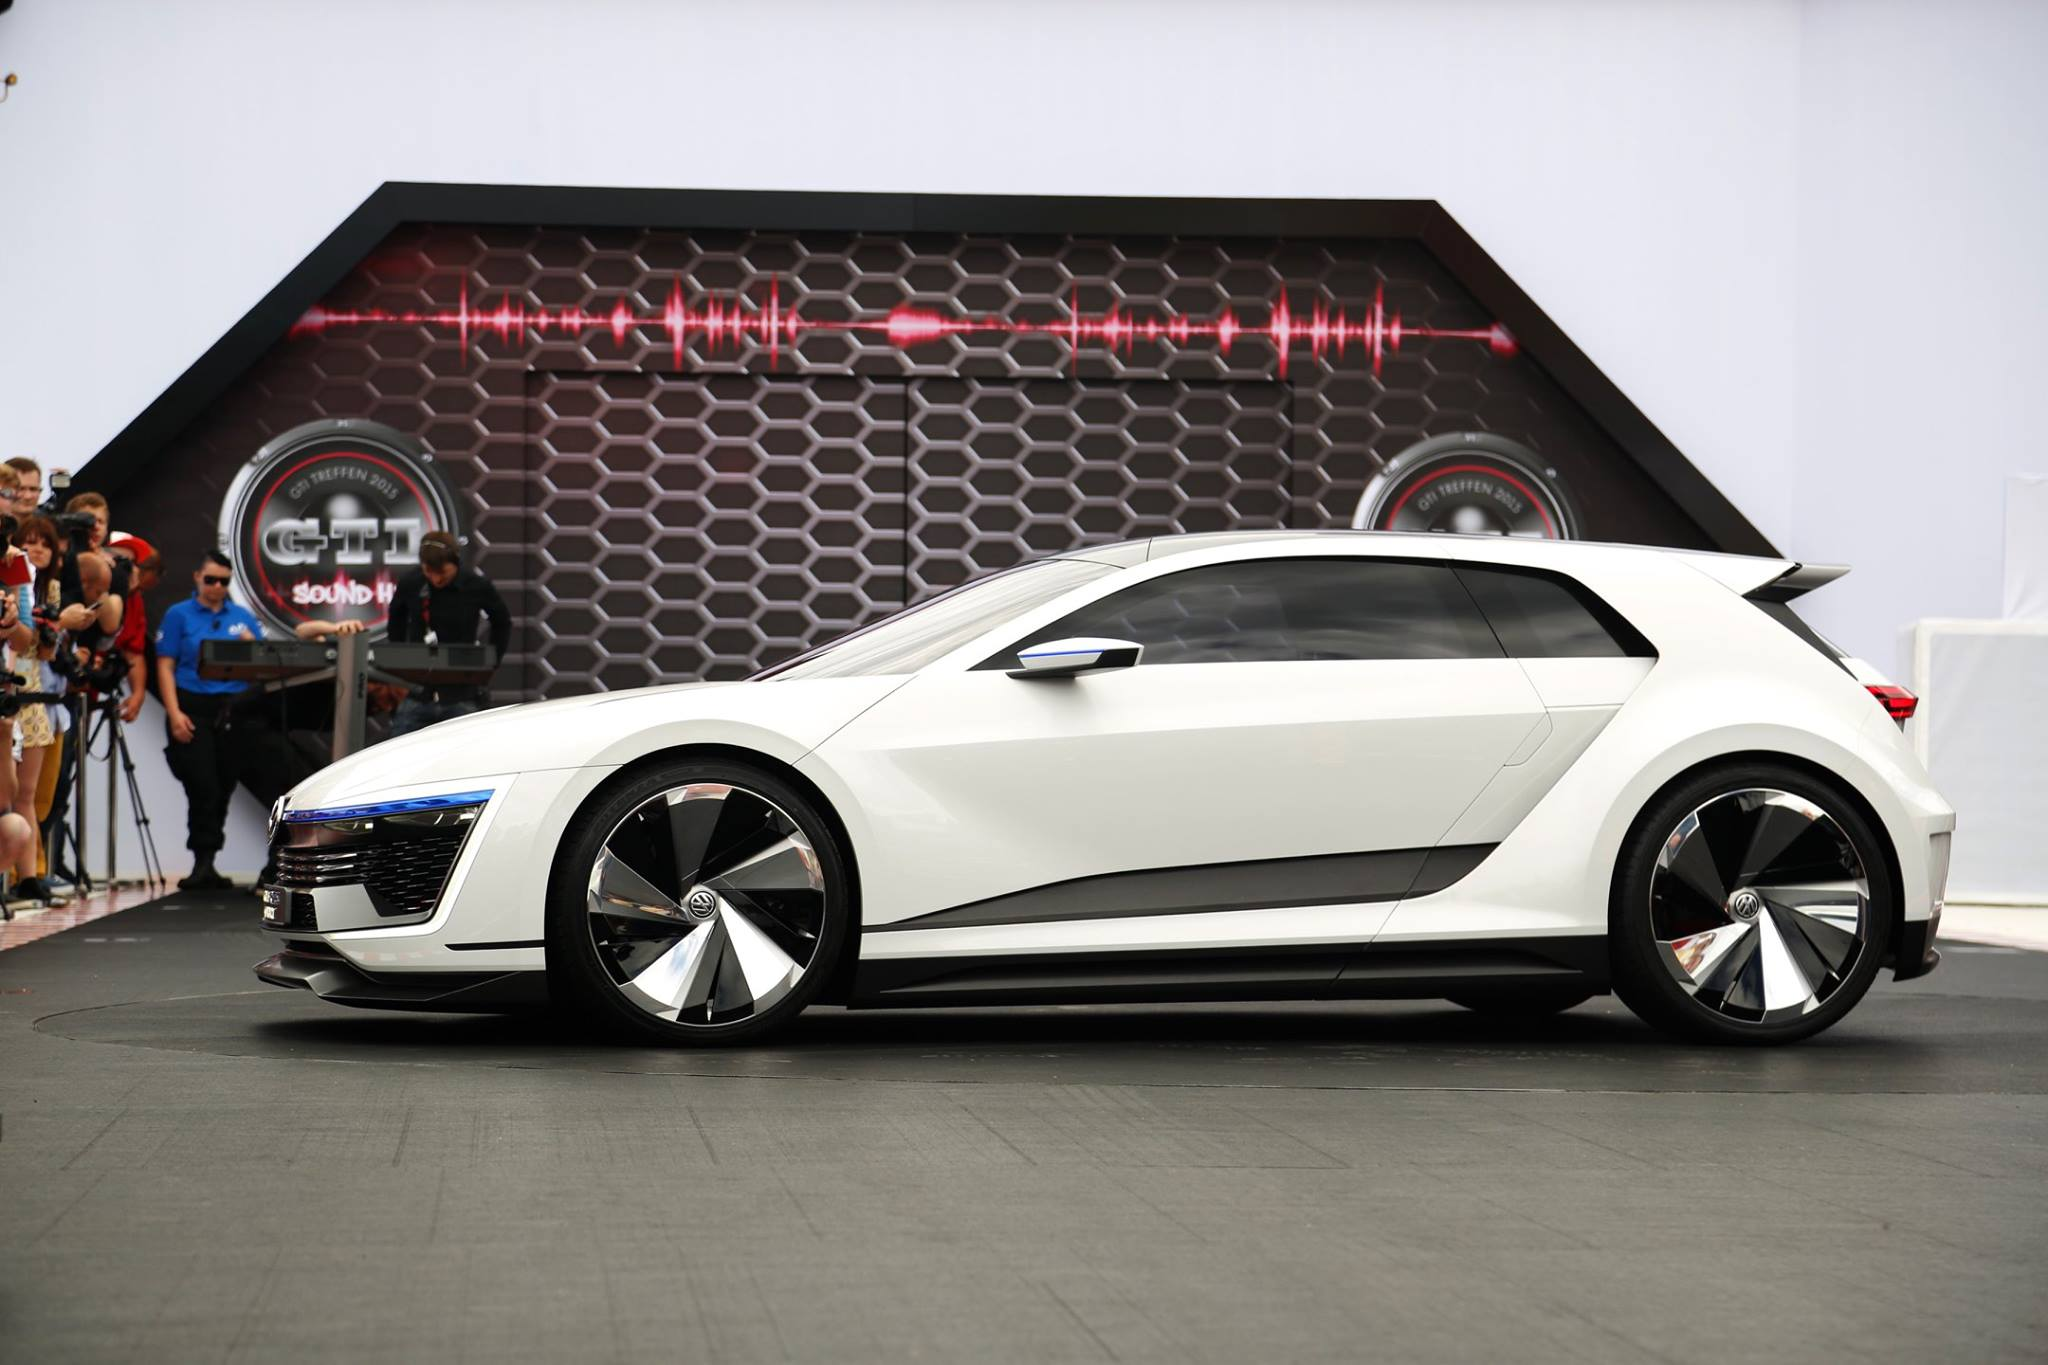 Volkswagen Xl3 Coming In 2018 With 1 4 Liter Hybrid Engine